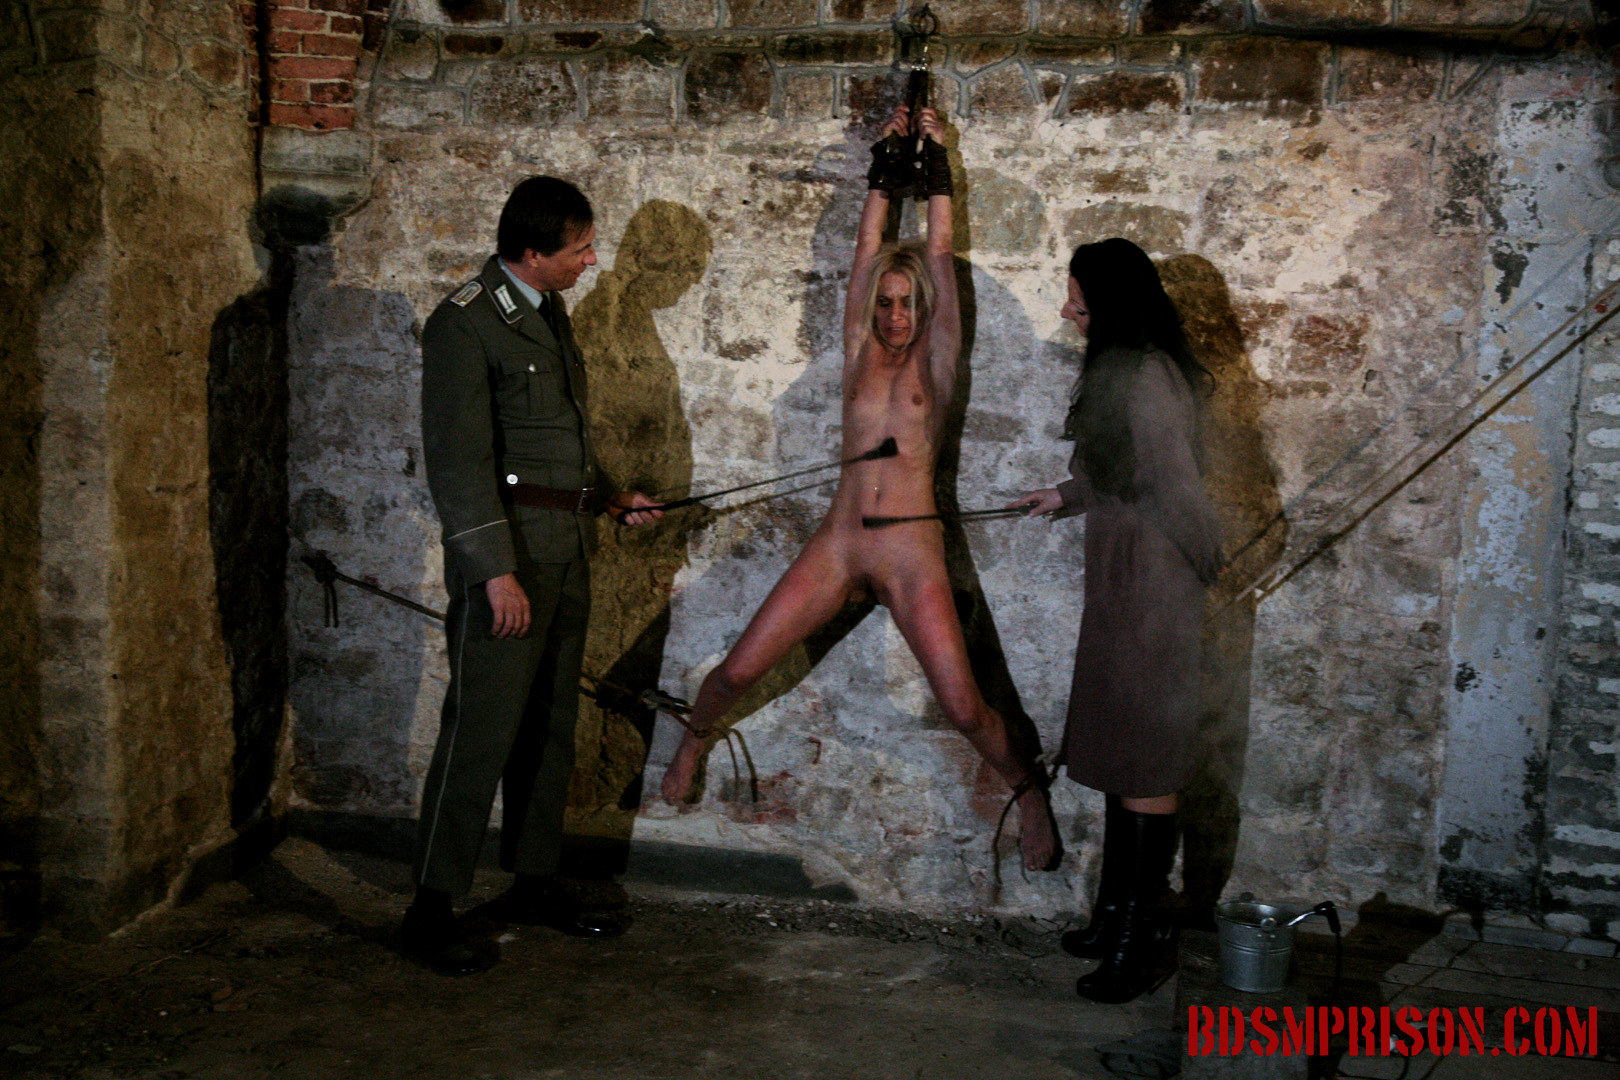 Domination bondage electro play with mirela. Mirela was arrested for being a spy and imprisoned. Her punishment will be harsh, worse than her interrogation. A couple prison guards will take on the task of her sex slave training. She has to be washed first. She must endure a BDSM Prison mistress and Master, domination, humiliation, fingering, spanking, smacking, whipping, bondage, breast, pussy and nipple molest with a rough scrub down, suspended upside down. She better get used to it. That's how all prisoners are washed in this prison.